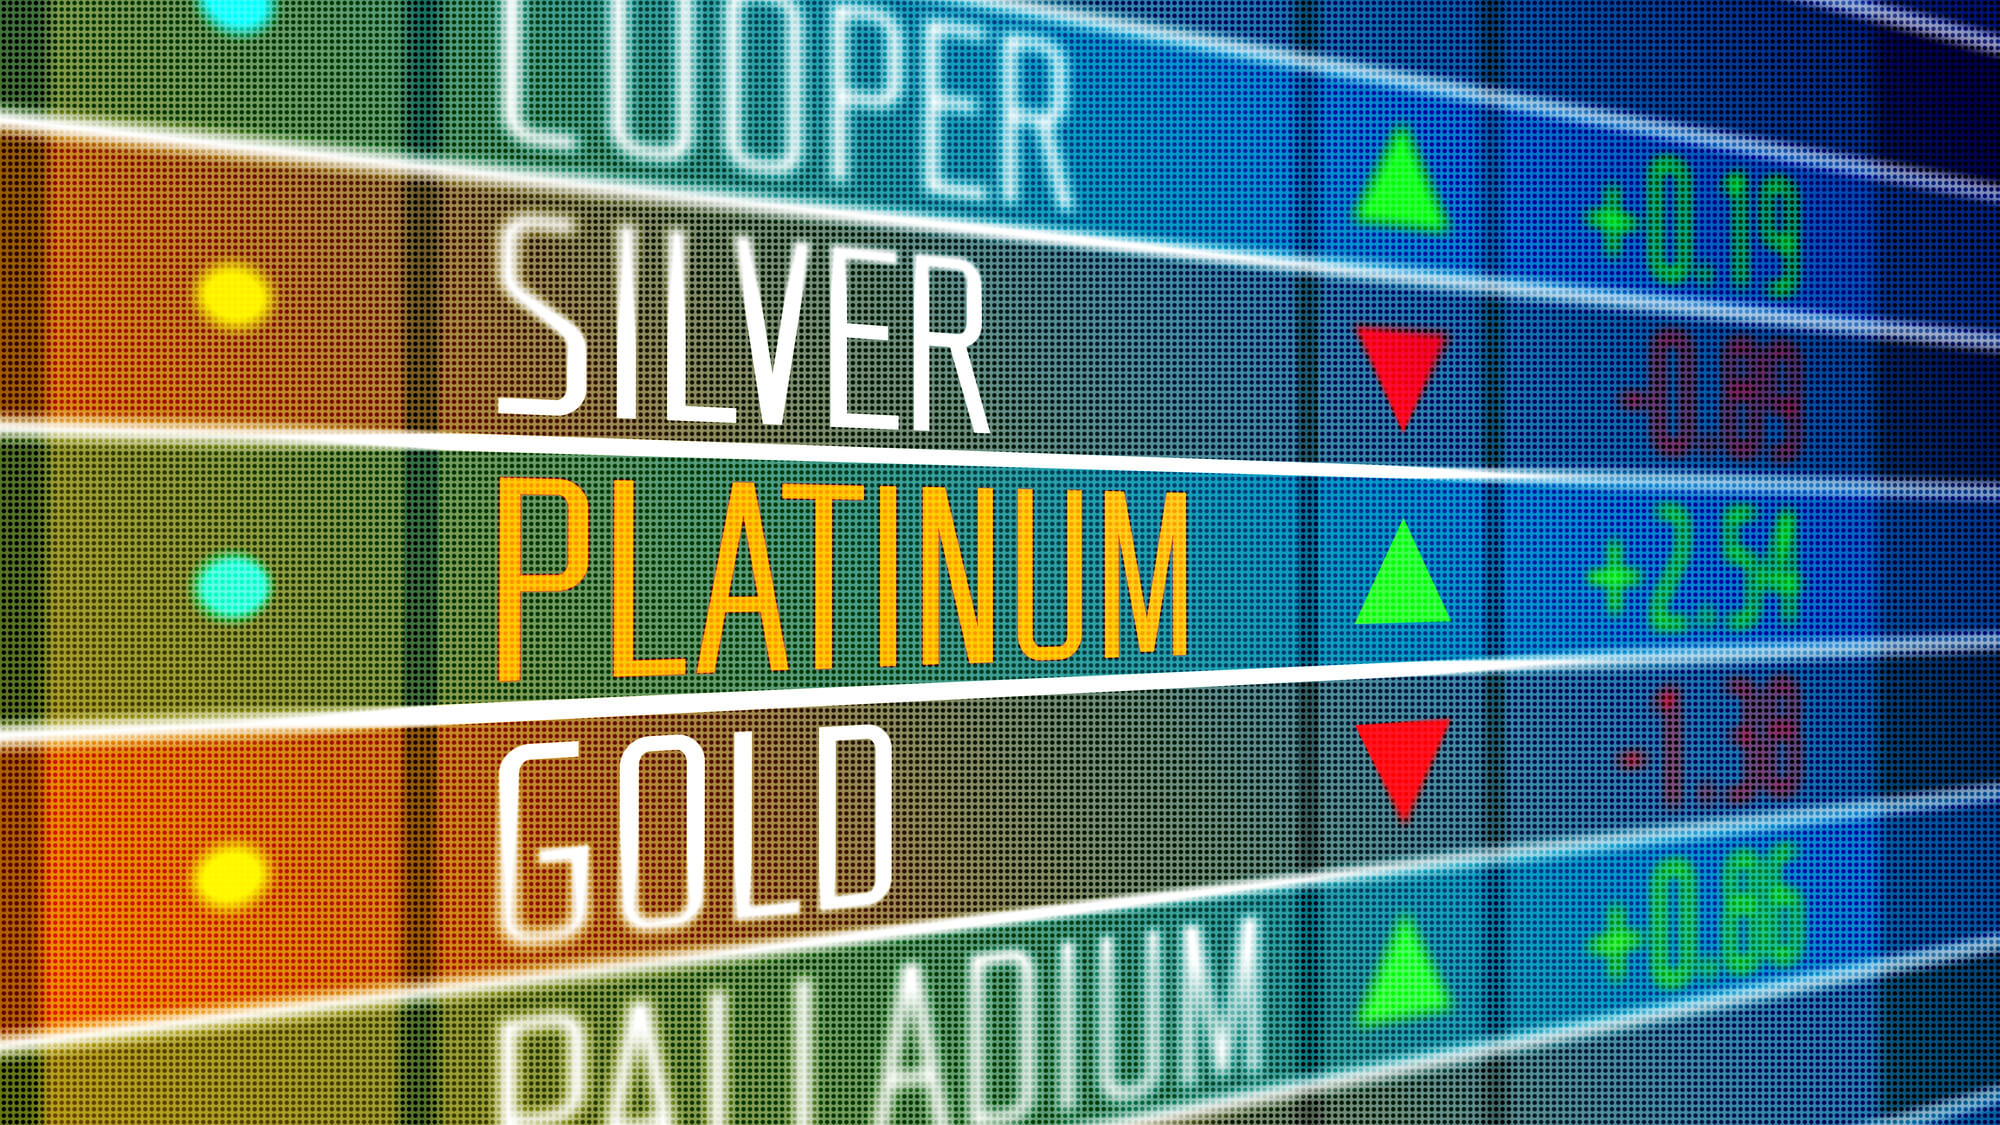 Where to Buy Gold West Palm Beach?